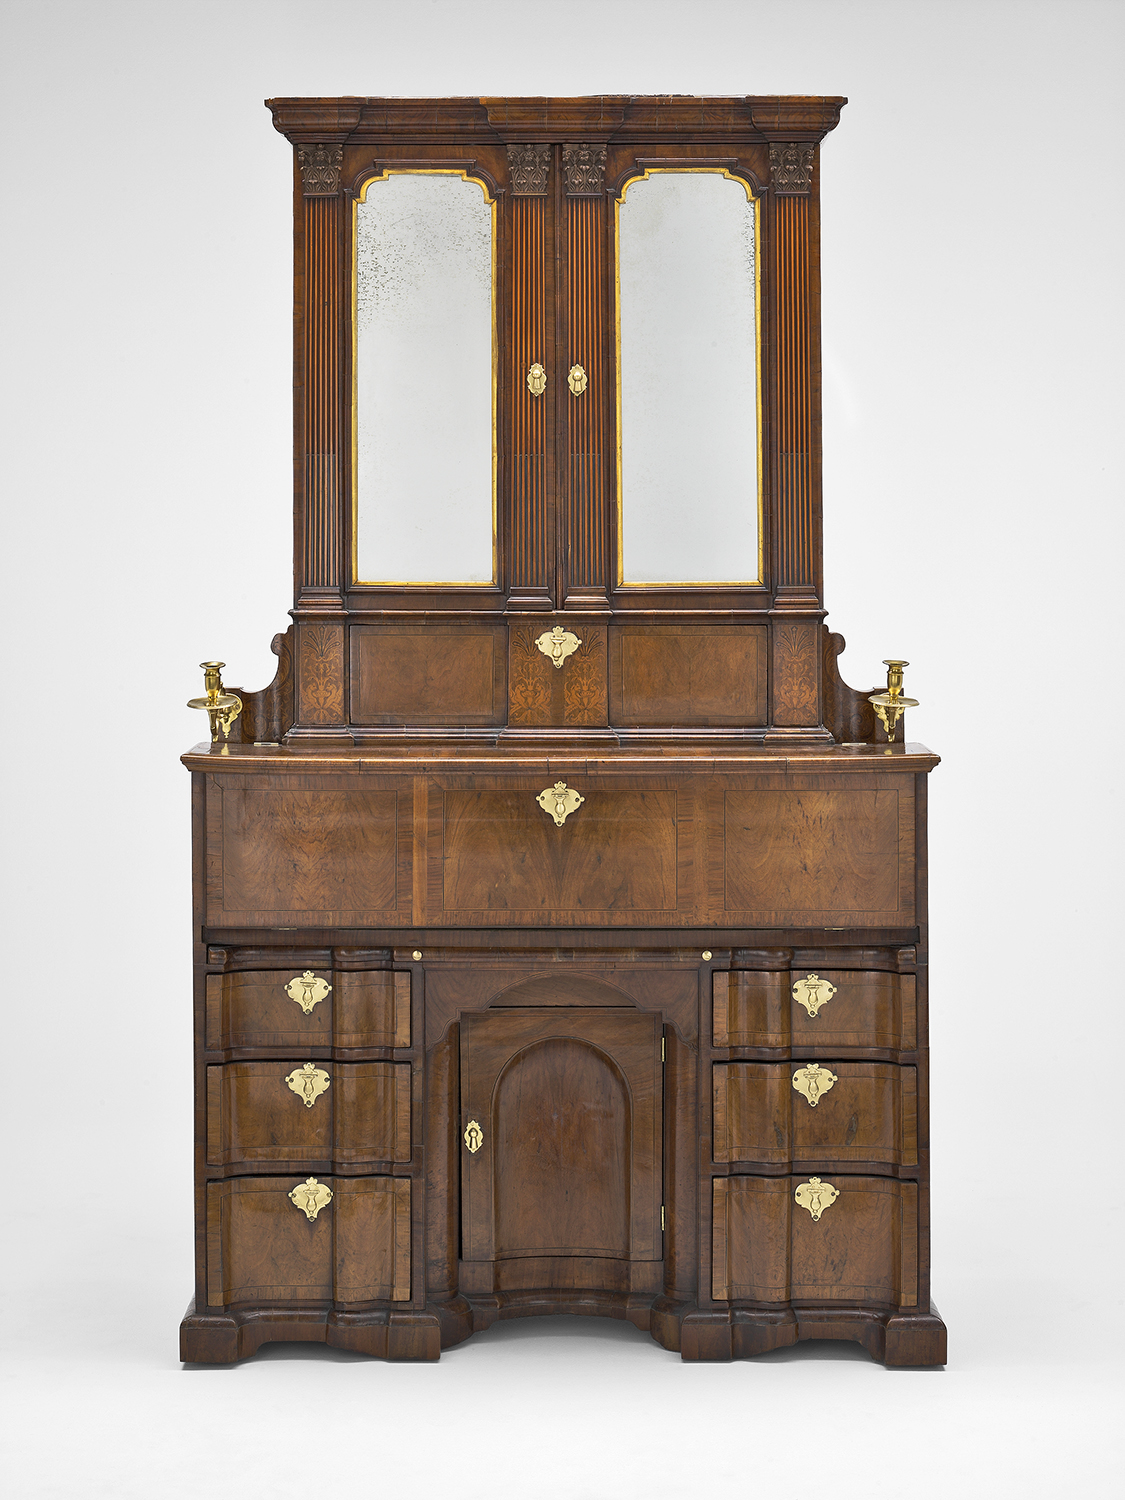 John Kirkhoffer Walnut  Secretary Cabinet, 1732. 18th-century Dublin was a booming city, attracting furniture makers and customers from England and the rest of Europe. The Kirkhoffer families were German Protestants who had fled to Ireland to escape religious persecution.  Jonathan Swift, author of Gulliver's Travels, is said to have owned one of these cabinets. Art  Institute of Chicago.